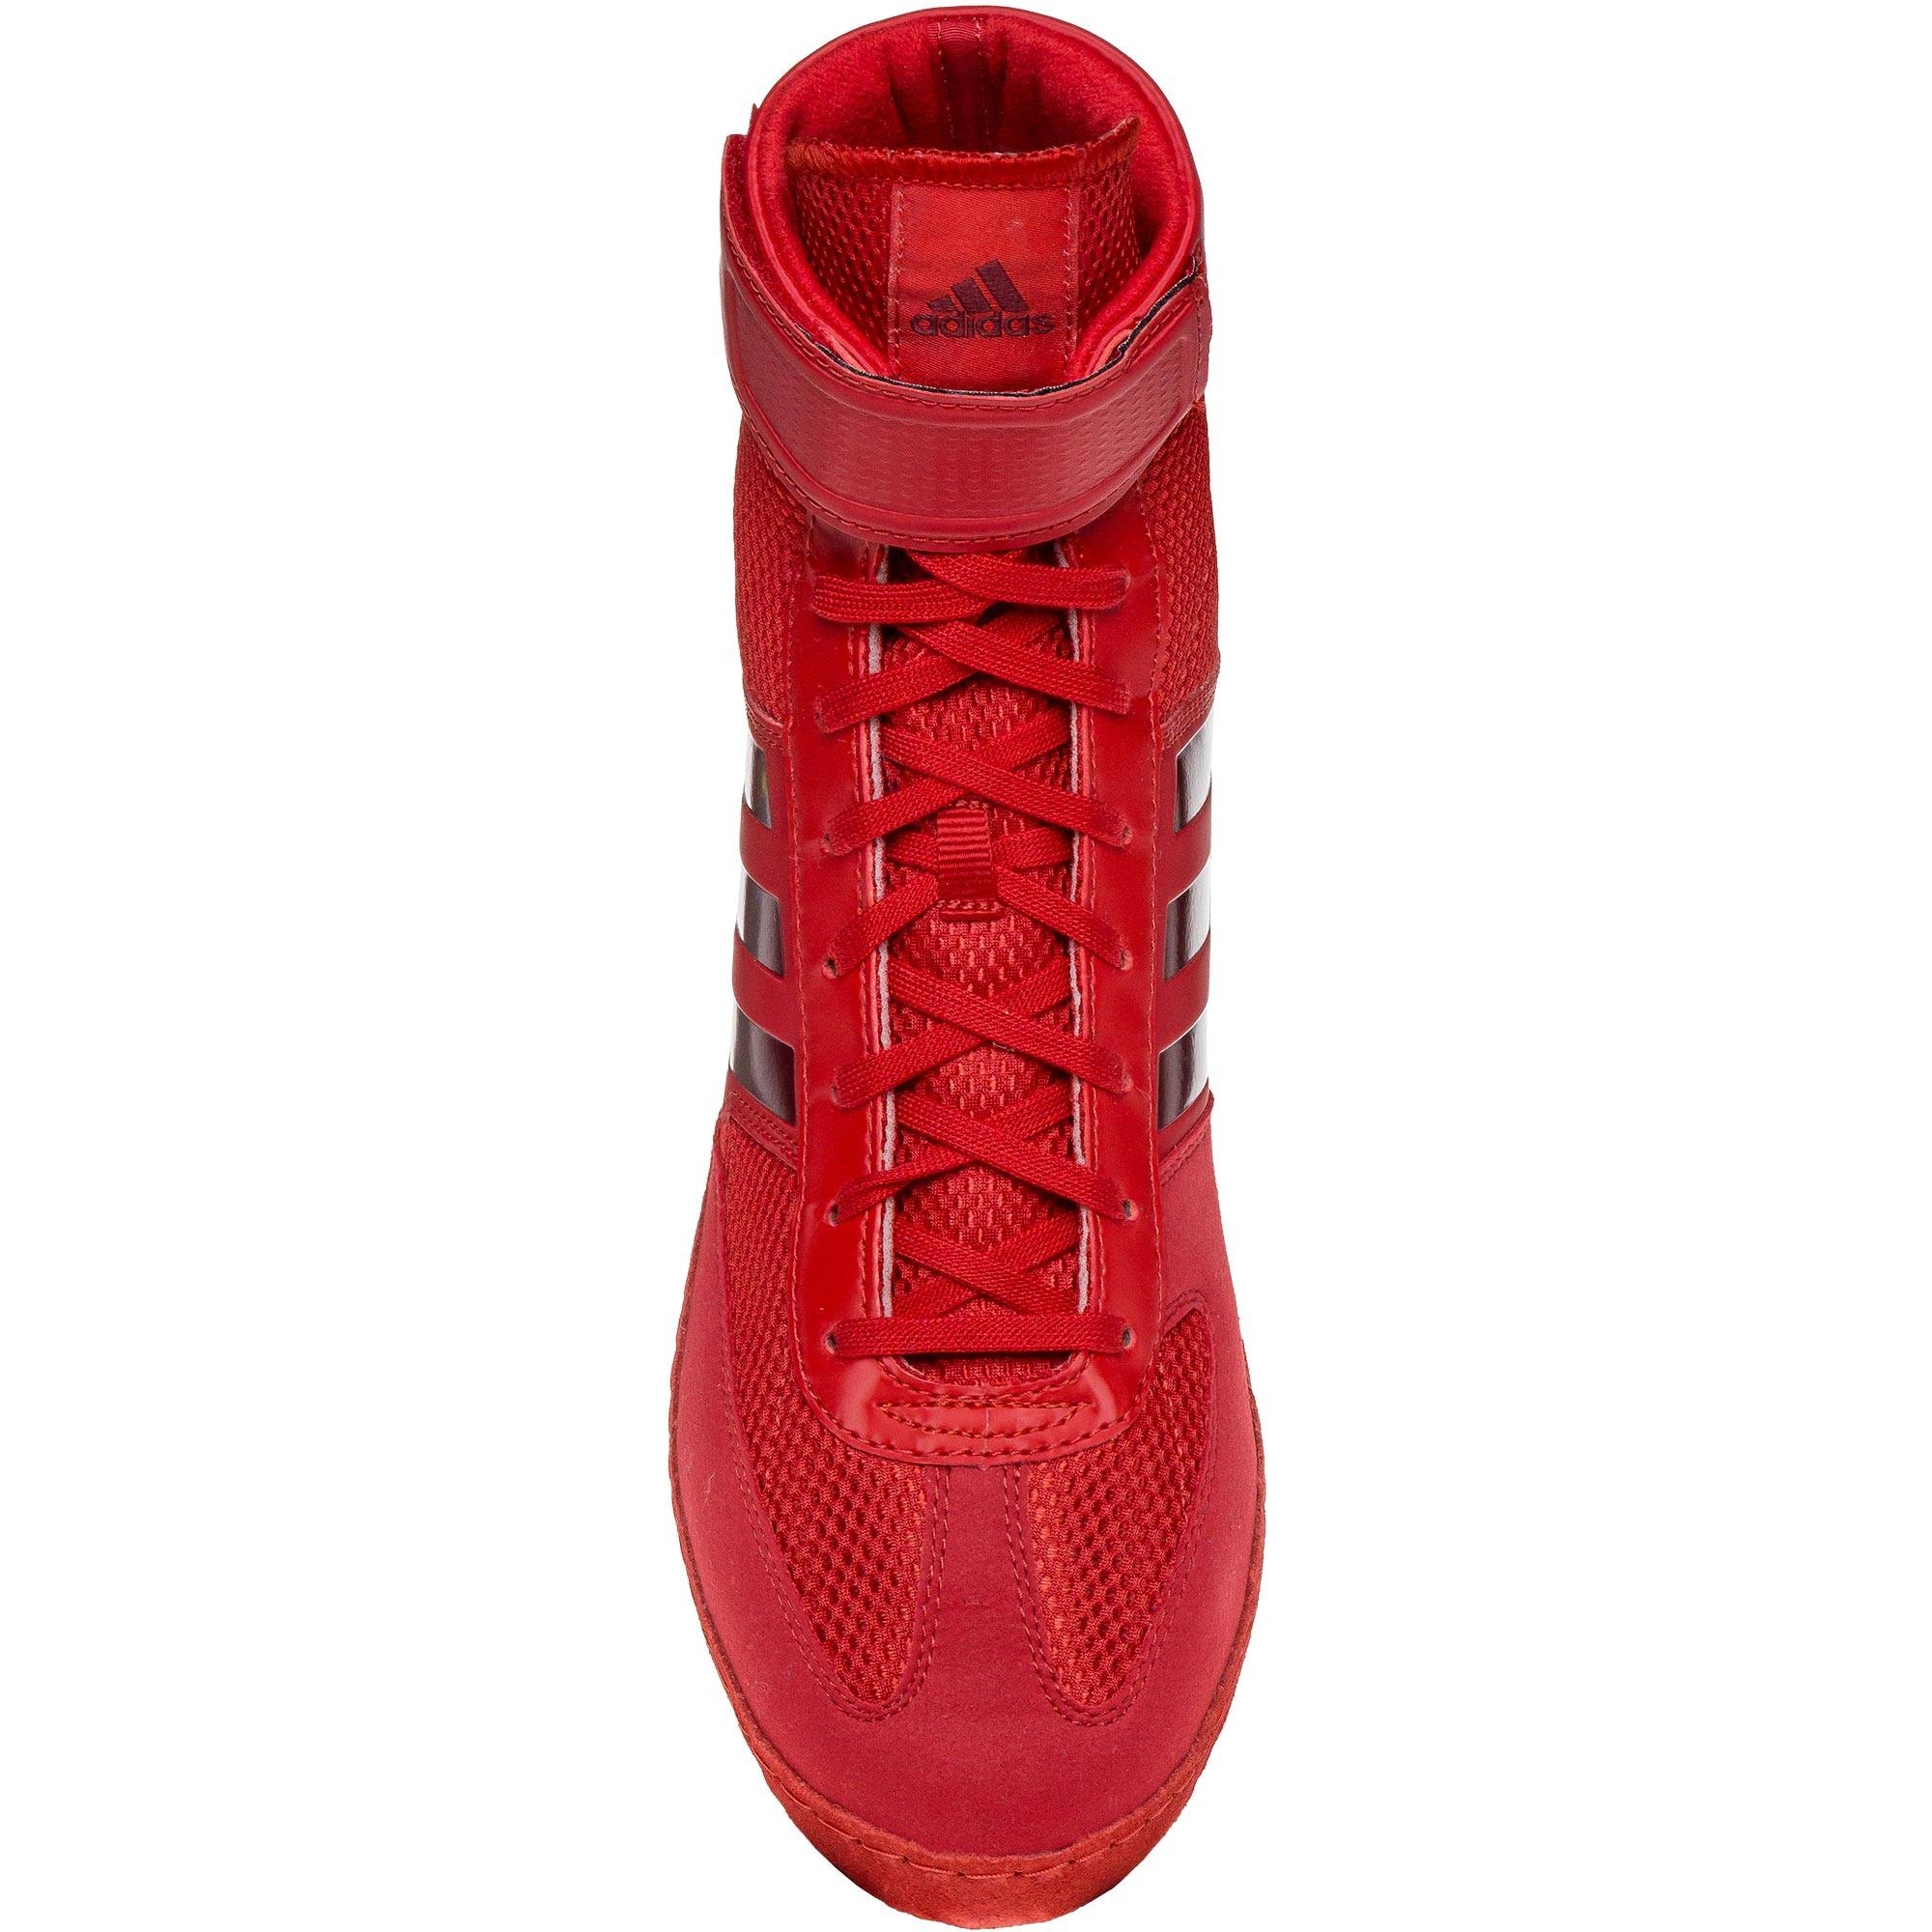 8695276b22ea Adidas Comba Speed 5 Red Dark Red mainAdidas Comba Speed 5 Red Dark Red Red Adidas Comba Speed 5 Red Dark Red frontAdidas Comba Speed 5 Red Dark Red ...